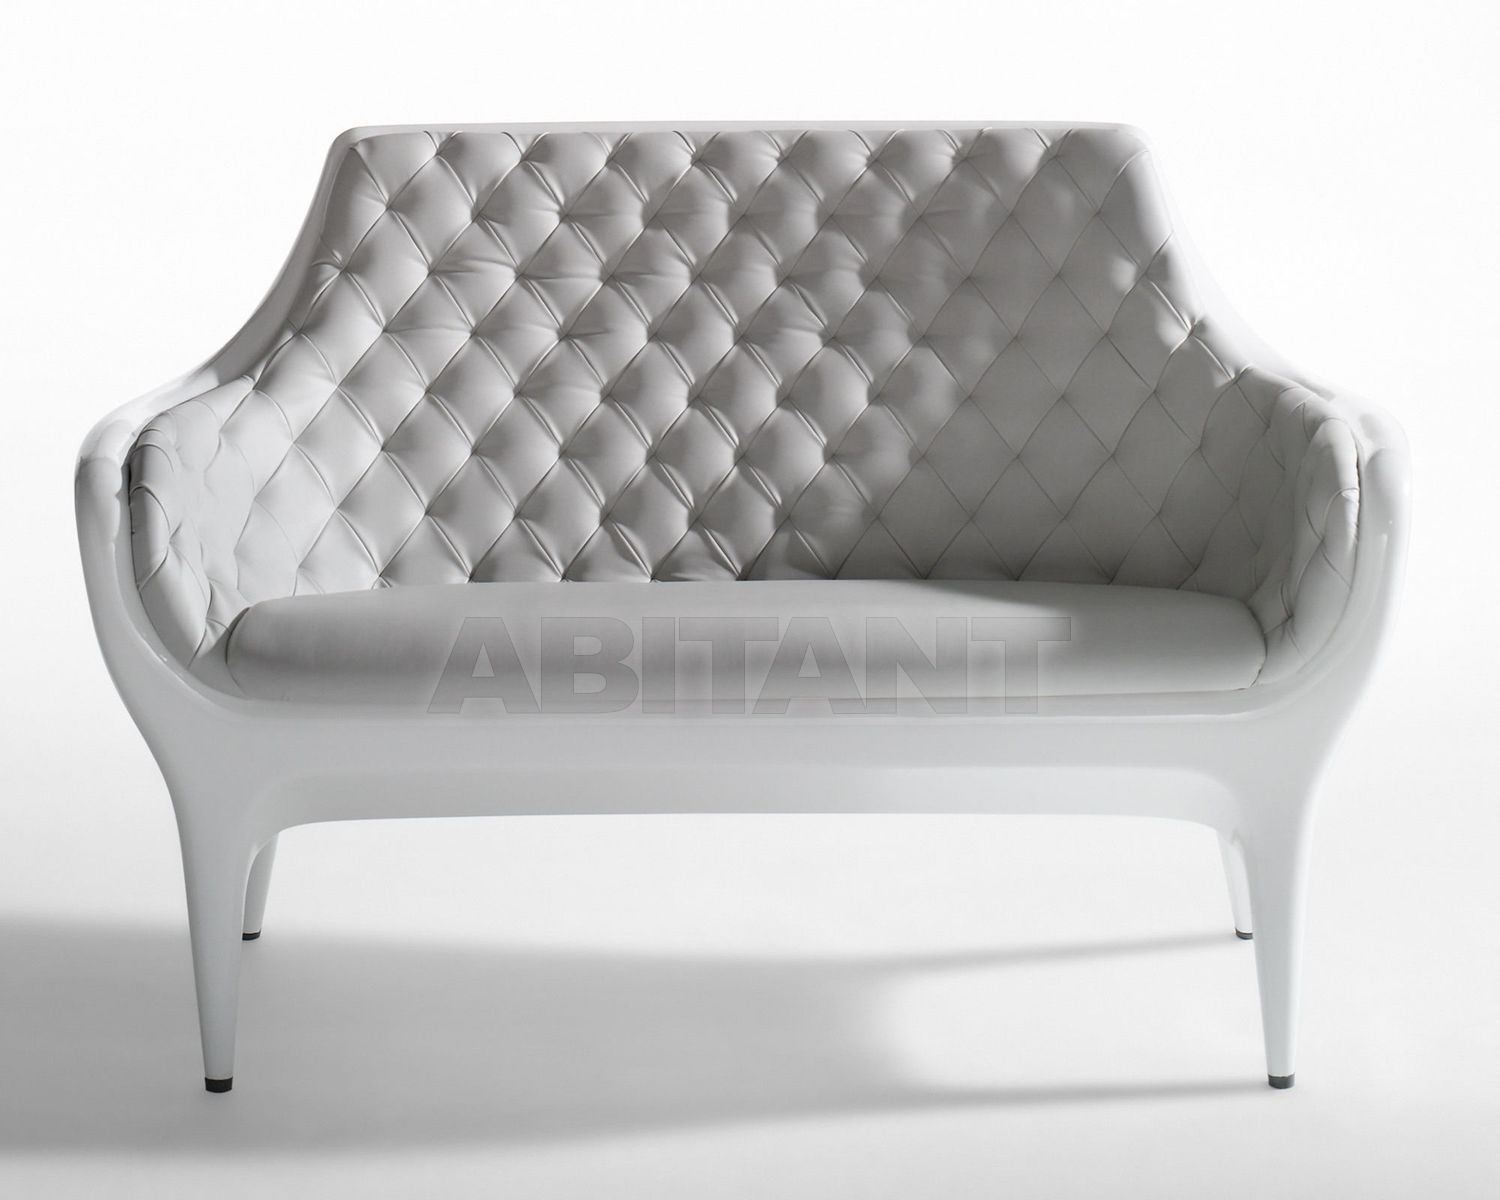 Купить Канапе SHOWTIME B.D (Barcelona Design) ARMCHAIRS SW02LK